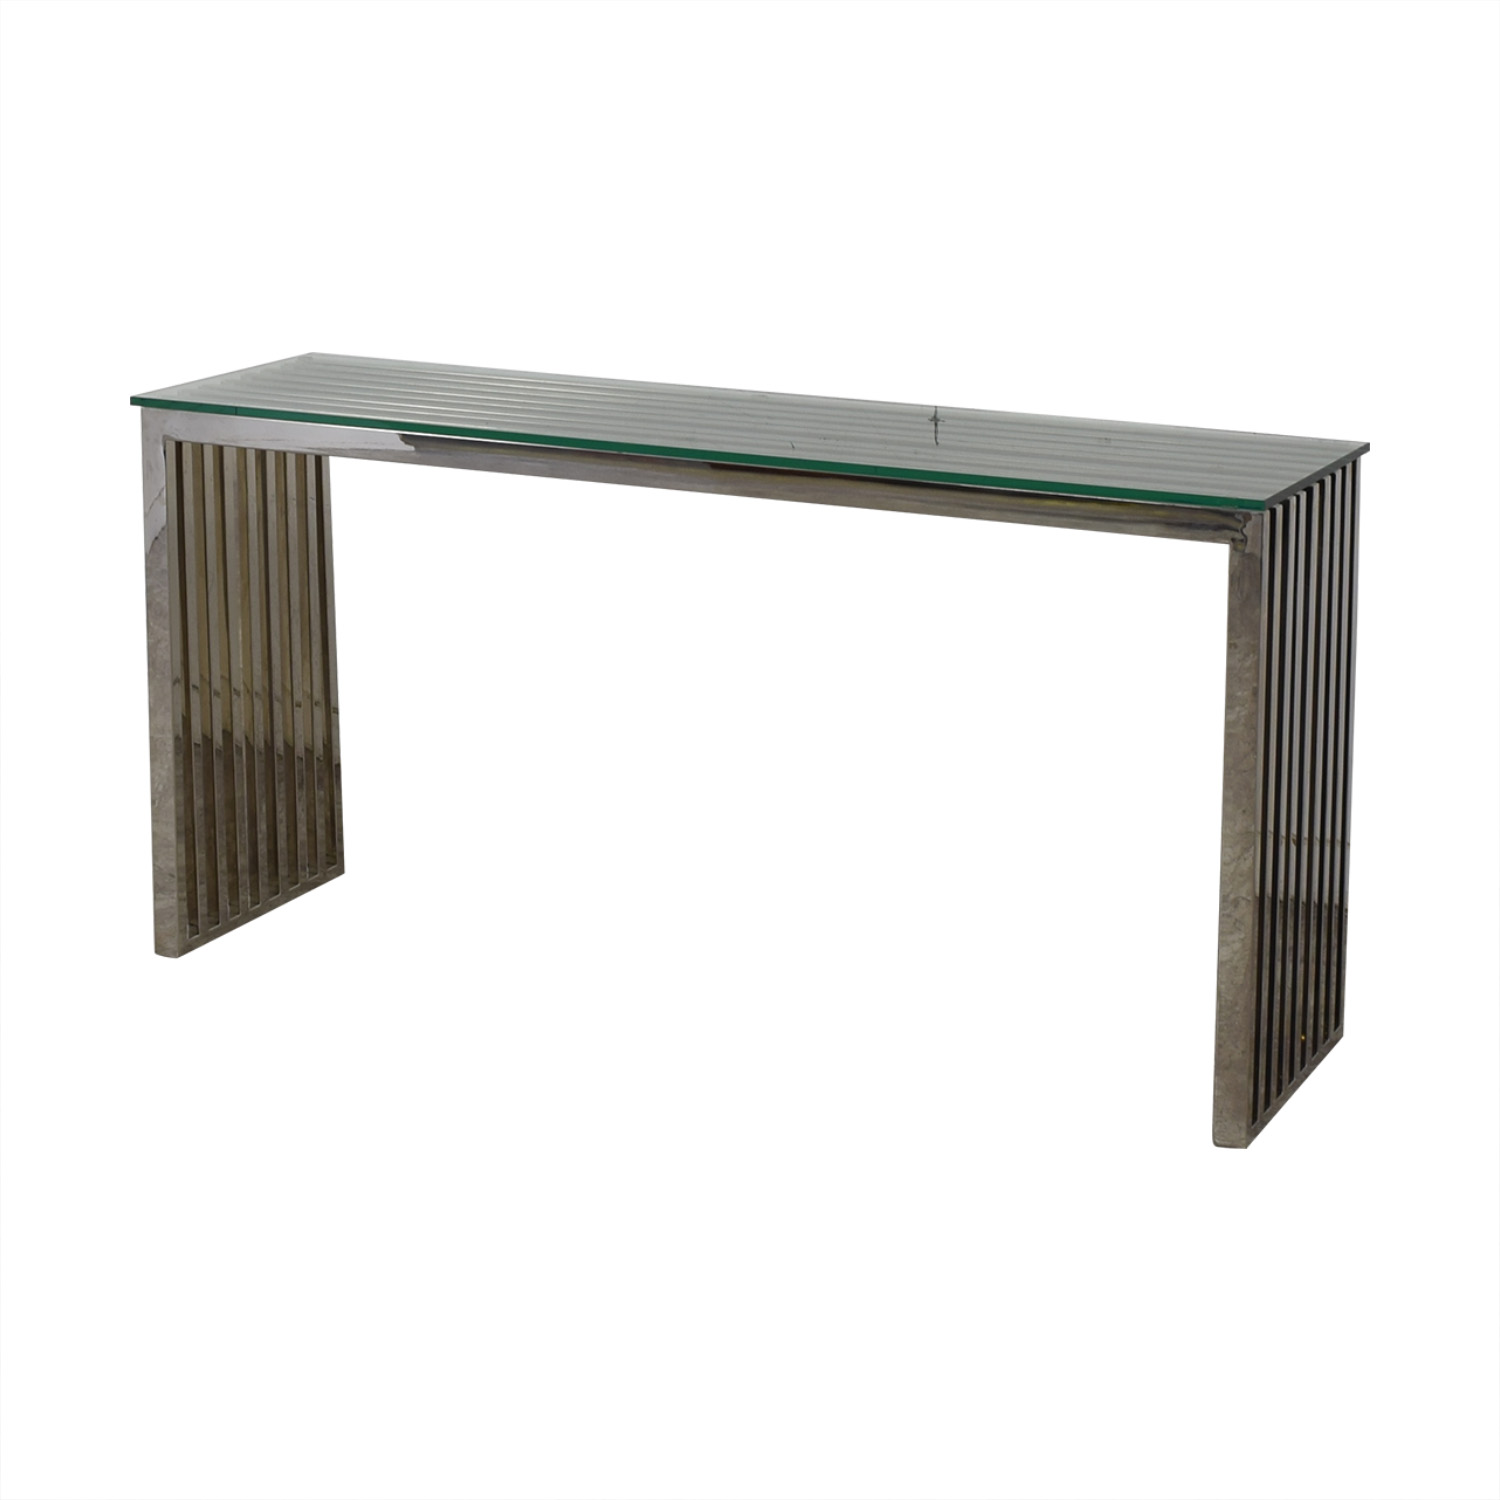 Tui Lifestyle Tui Lifestyle Stainless Steel Console discount